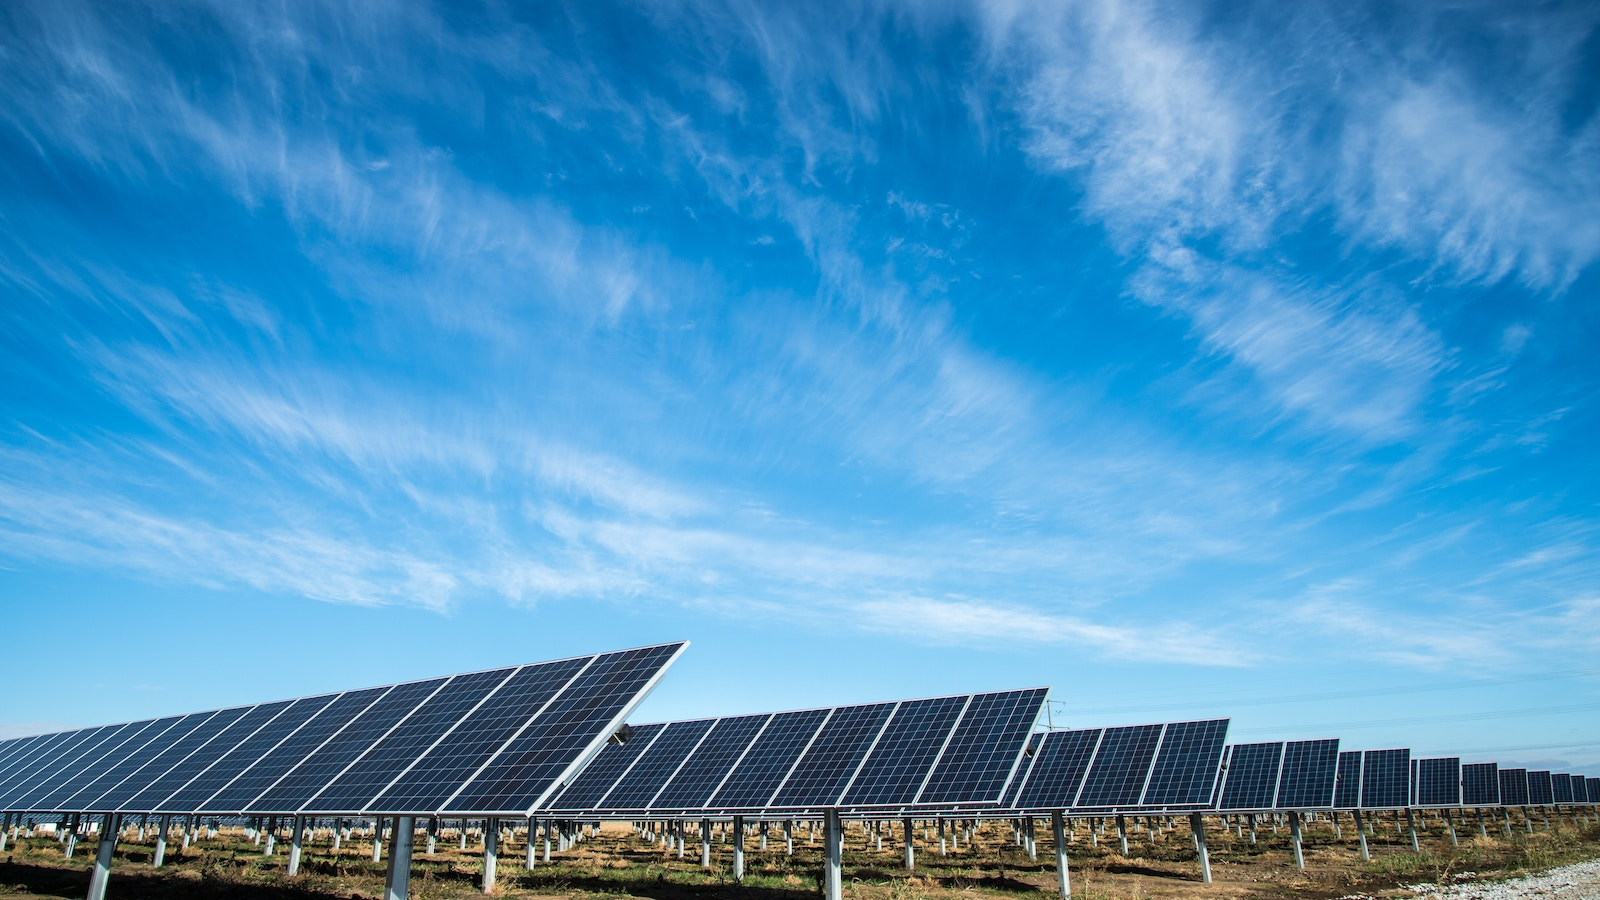 Solar panels - tech advancements that are changing the world